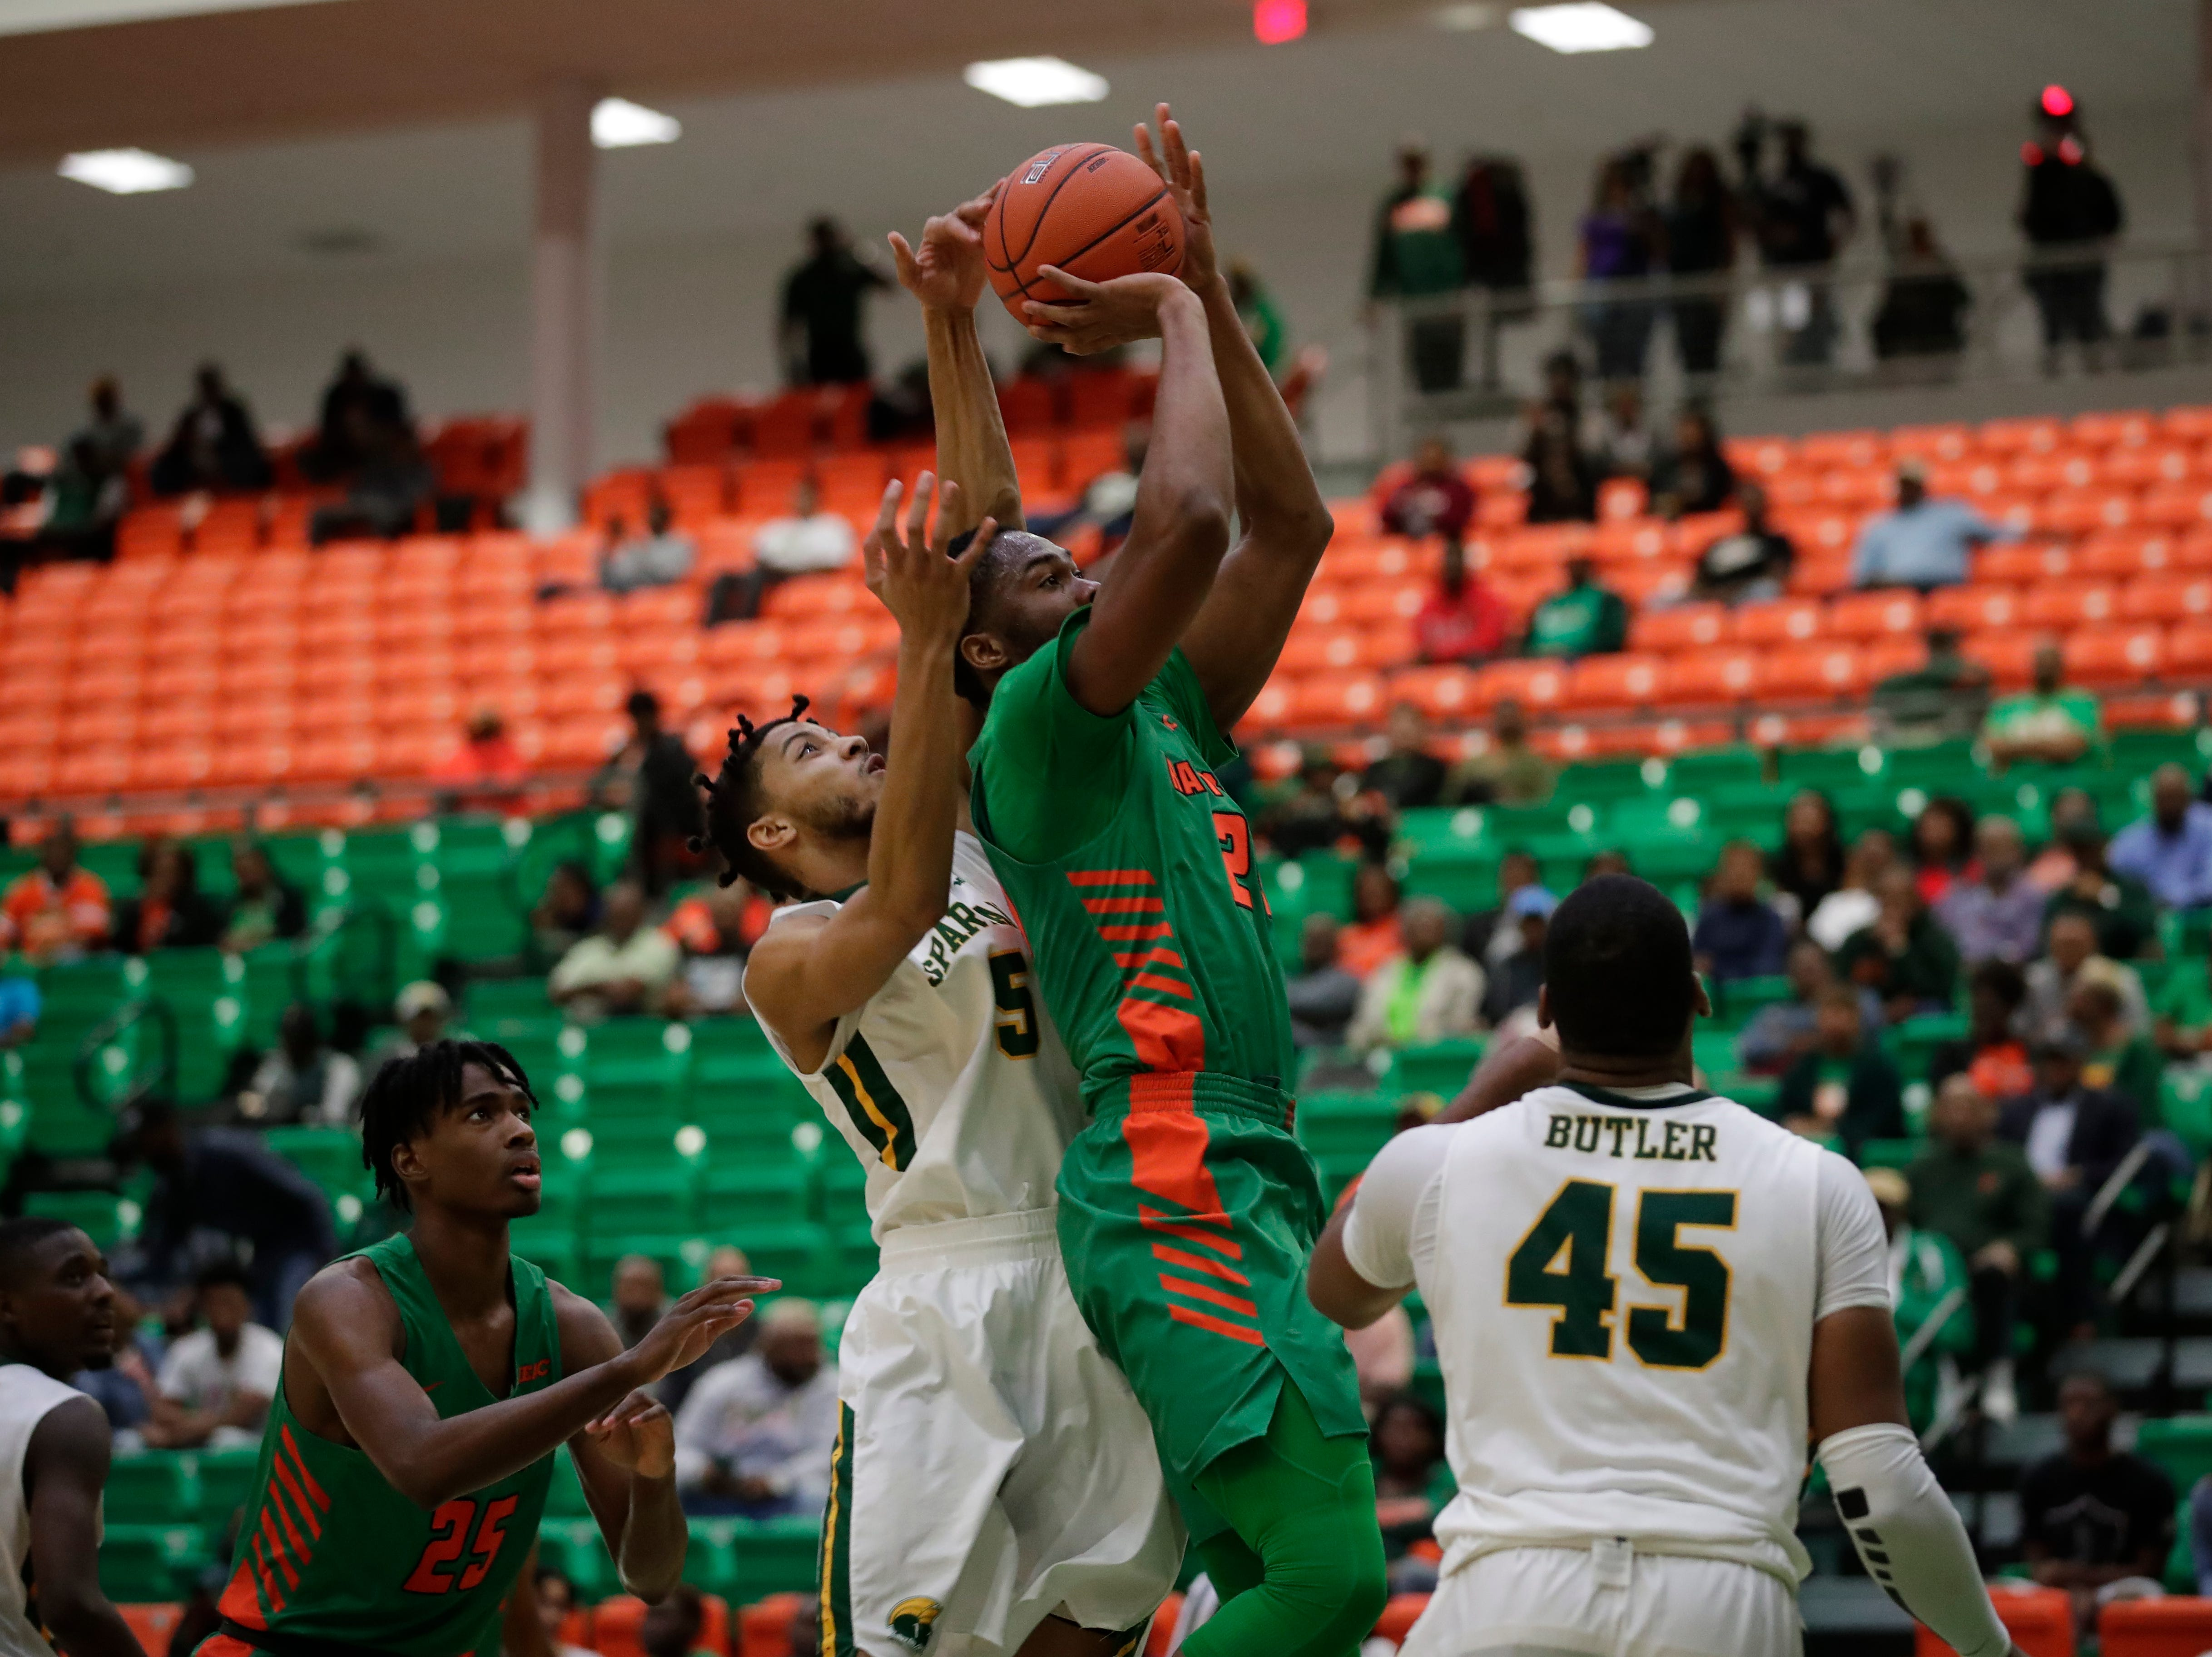 Florida A&M Rattlers forward Ifeanyi Umezurike (24) puts up a shot during a game between FAMU and Norfolk State at the Alfred Lawson Jr. Multipurpose Center Monday, Feb. 11, 2019.